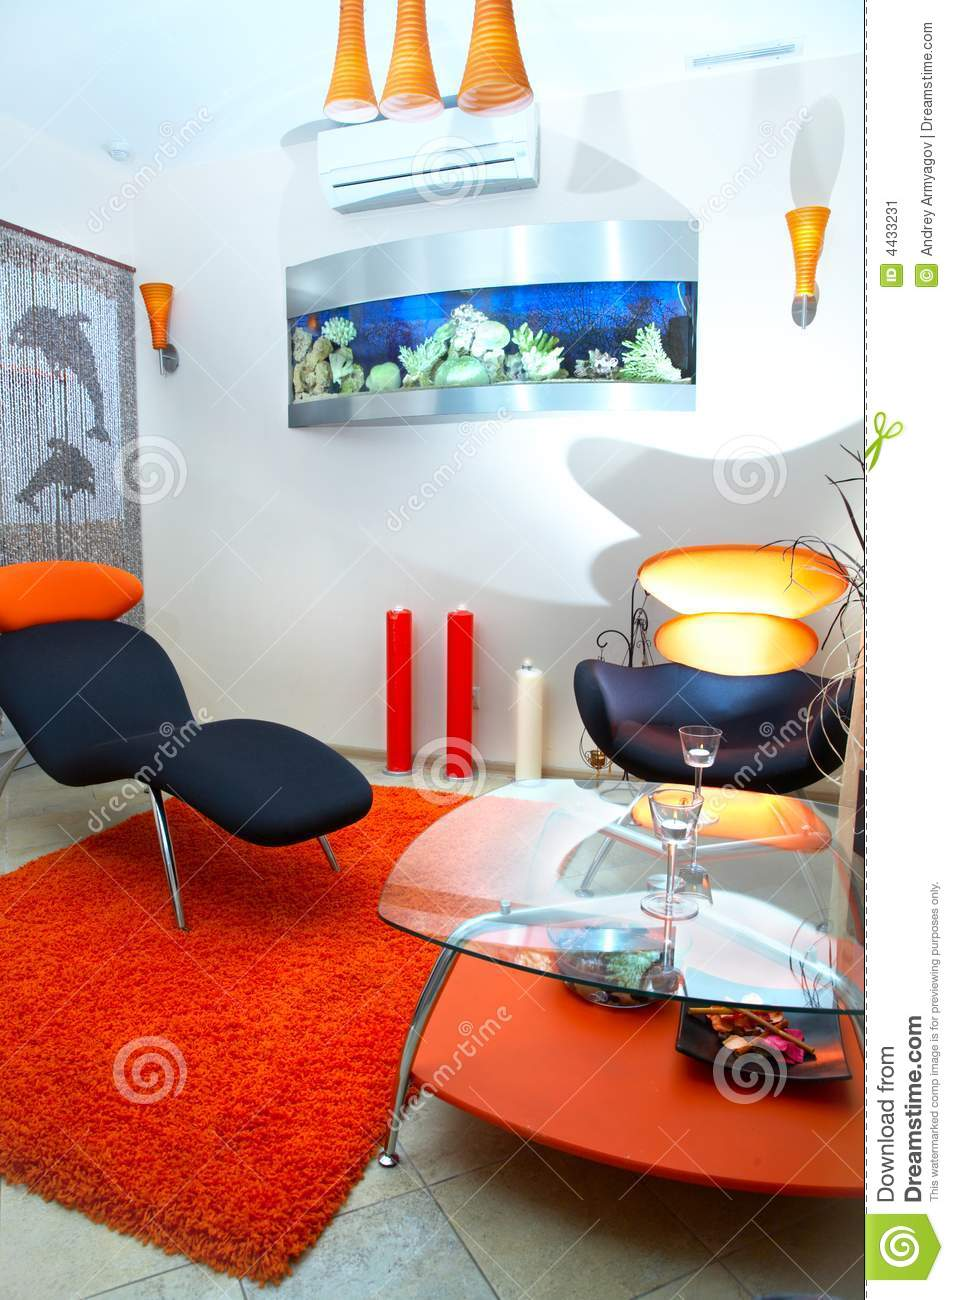 Room Of Rest Spa Salon Stock Image Image Of Indoors Home 4433231